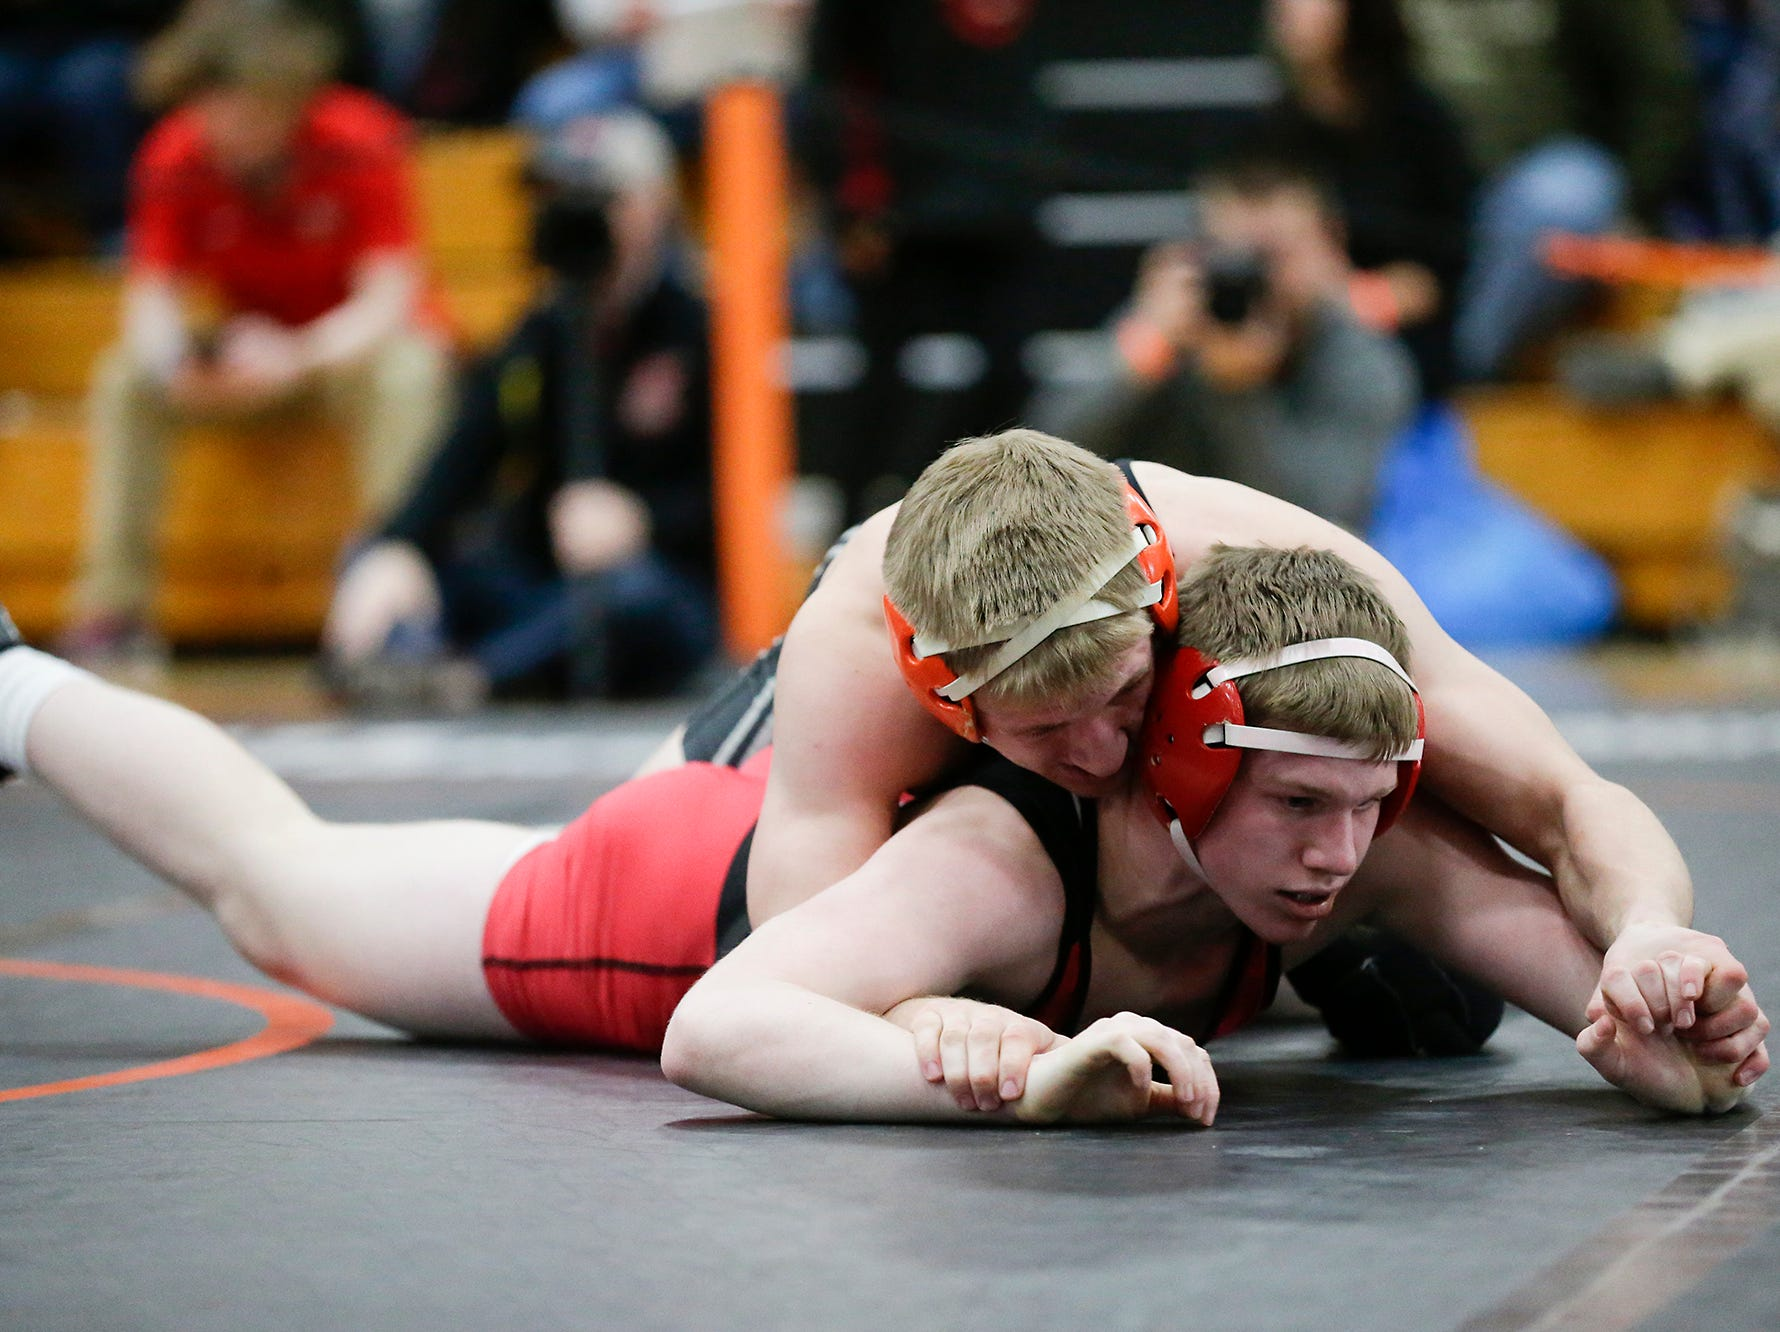 Bryce Crook of Neenah High School wrestles Josh Koll of Plymouth High School in the 160 pound weight class during the WIAA sectionals Saturday, February 16, 2019 in Hartford, Wis. Koll won with a pin. Doug Raflik/USA TODAY NETWORK-Wisconsin